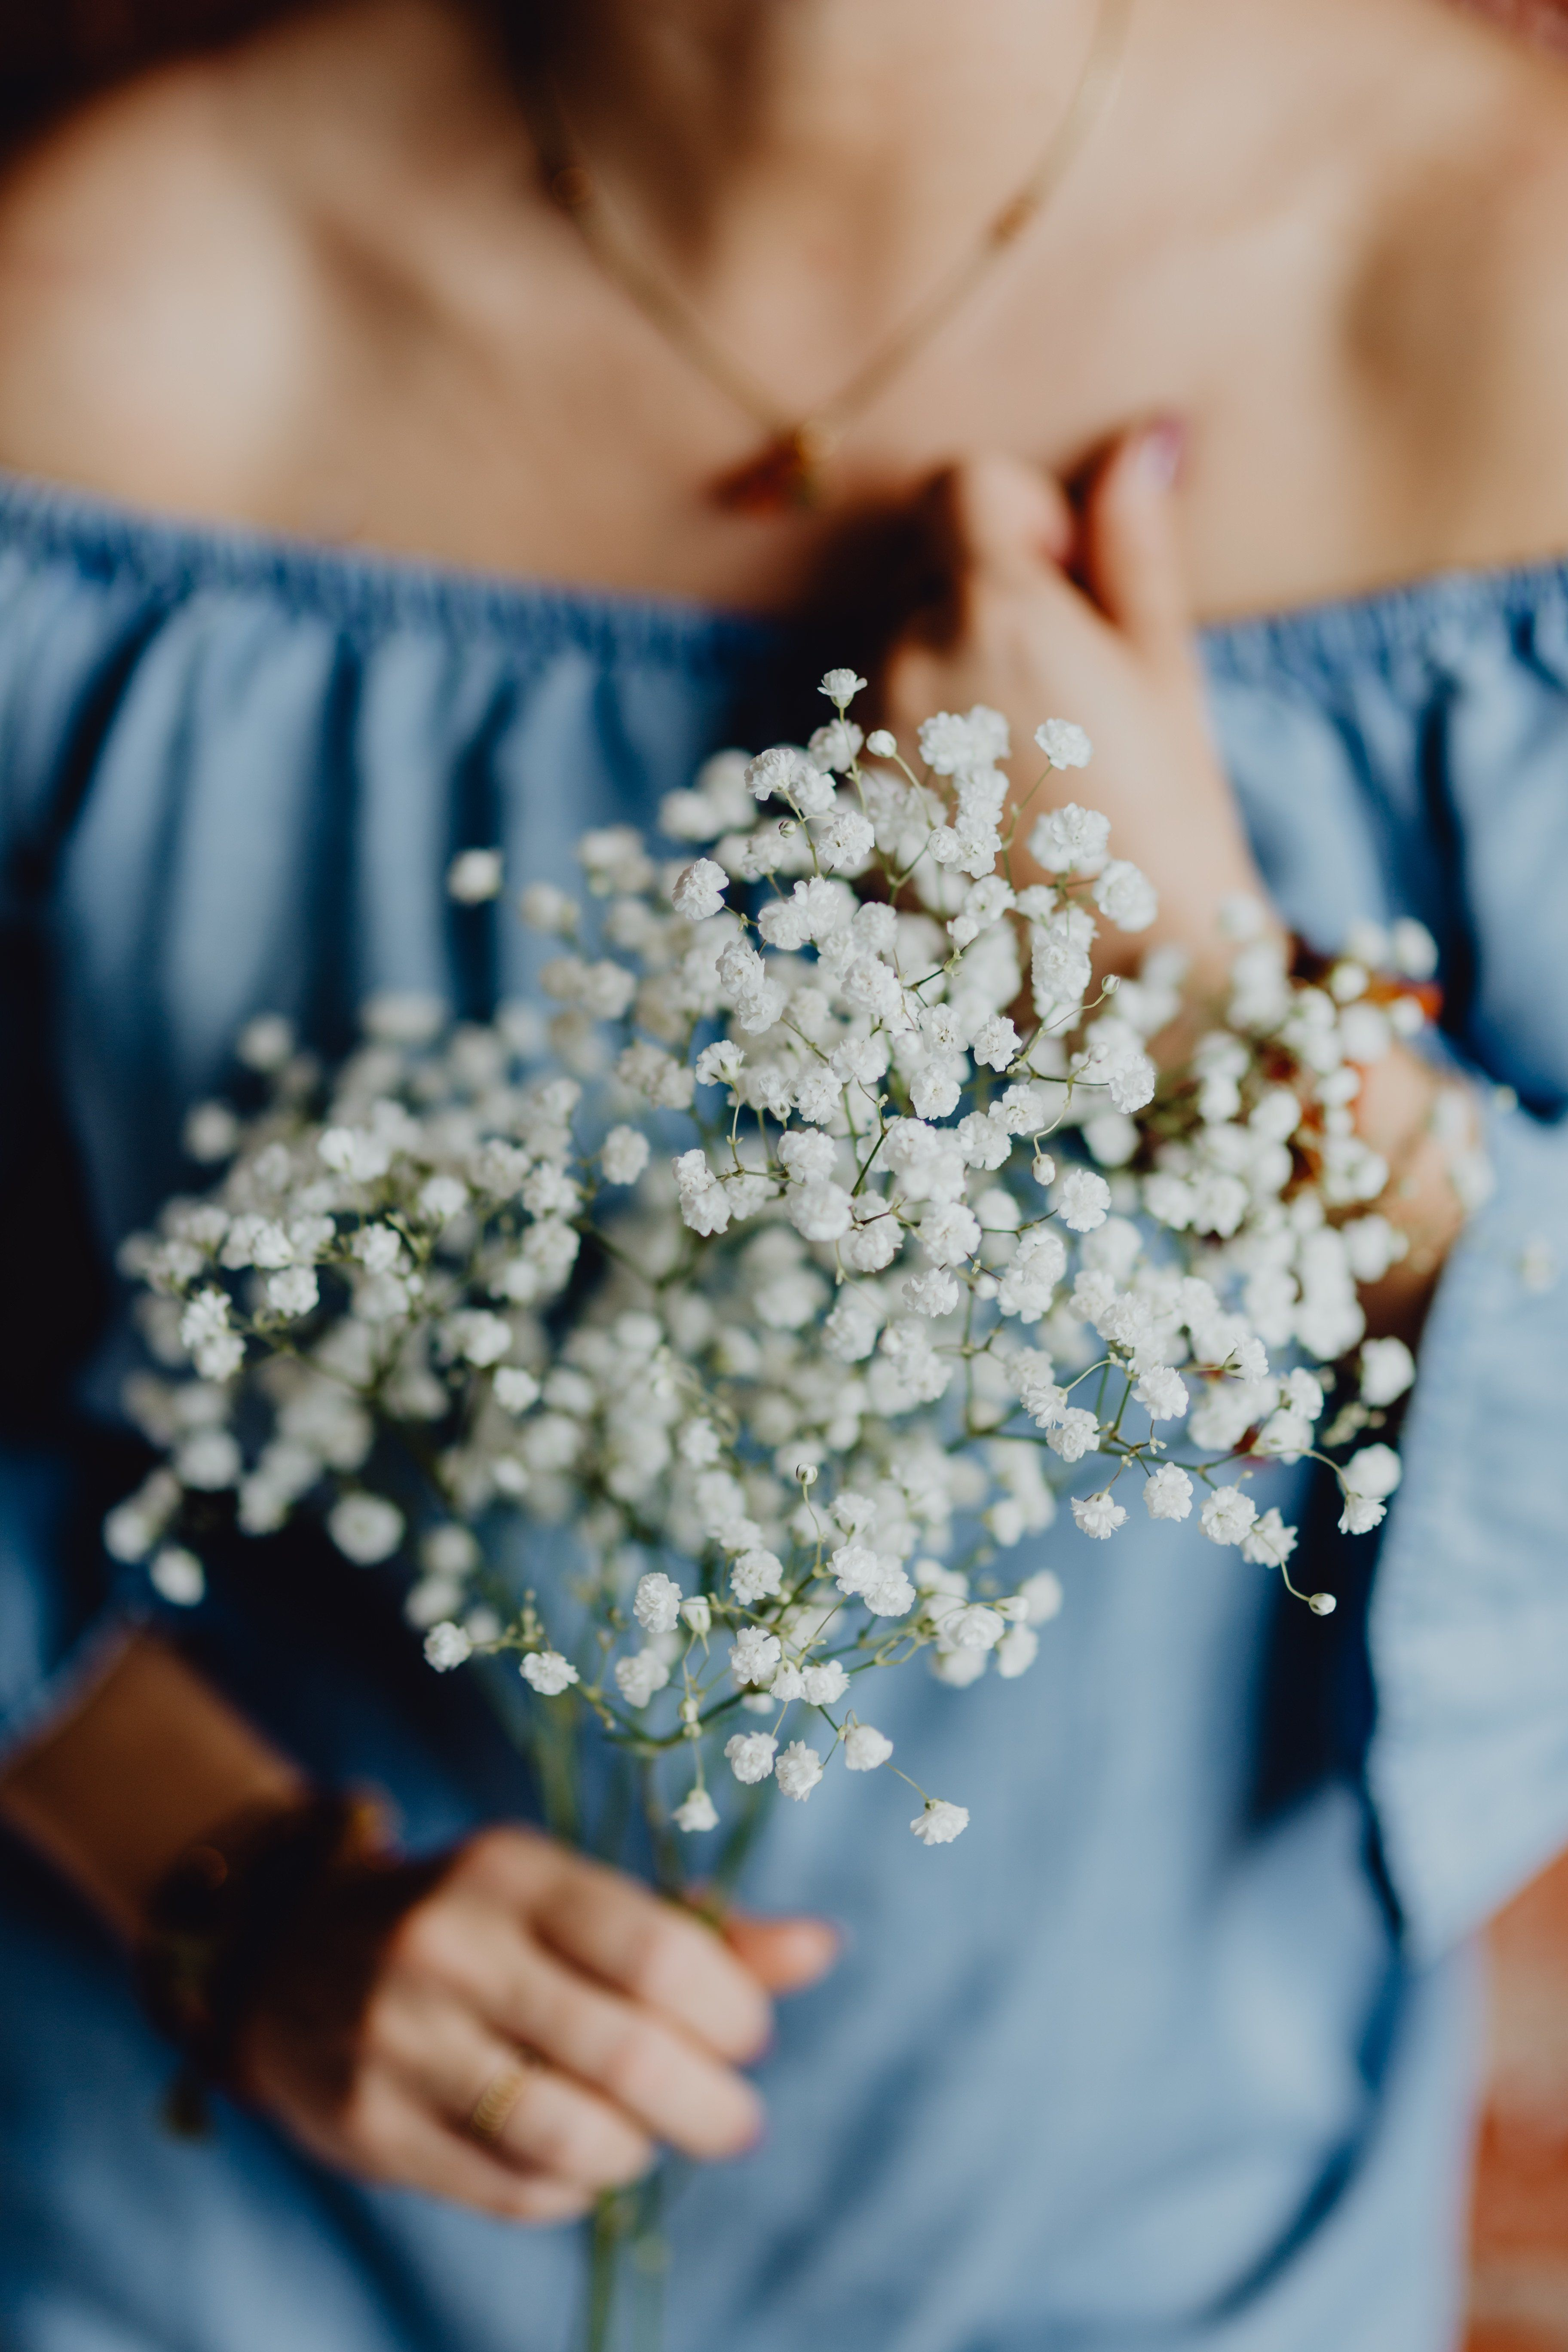 Baby S Breaths Meaning In 2020 Babys Breath Breath Meaning Artificial Silk Flowers